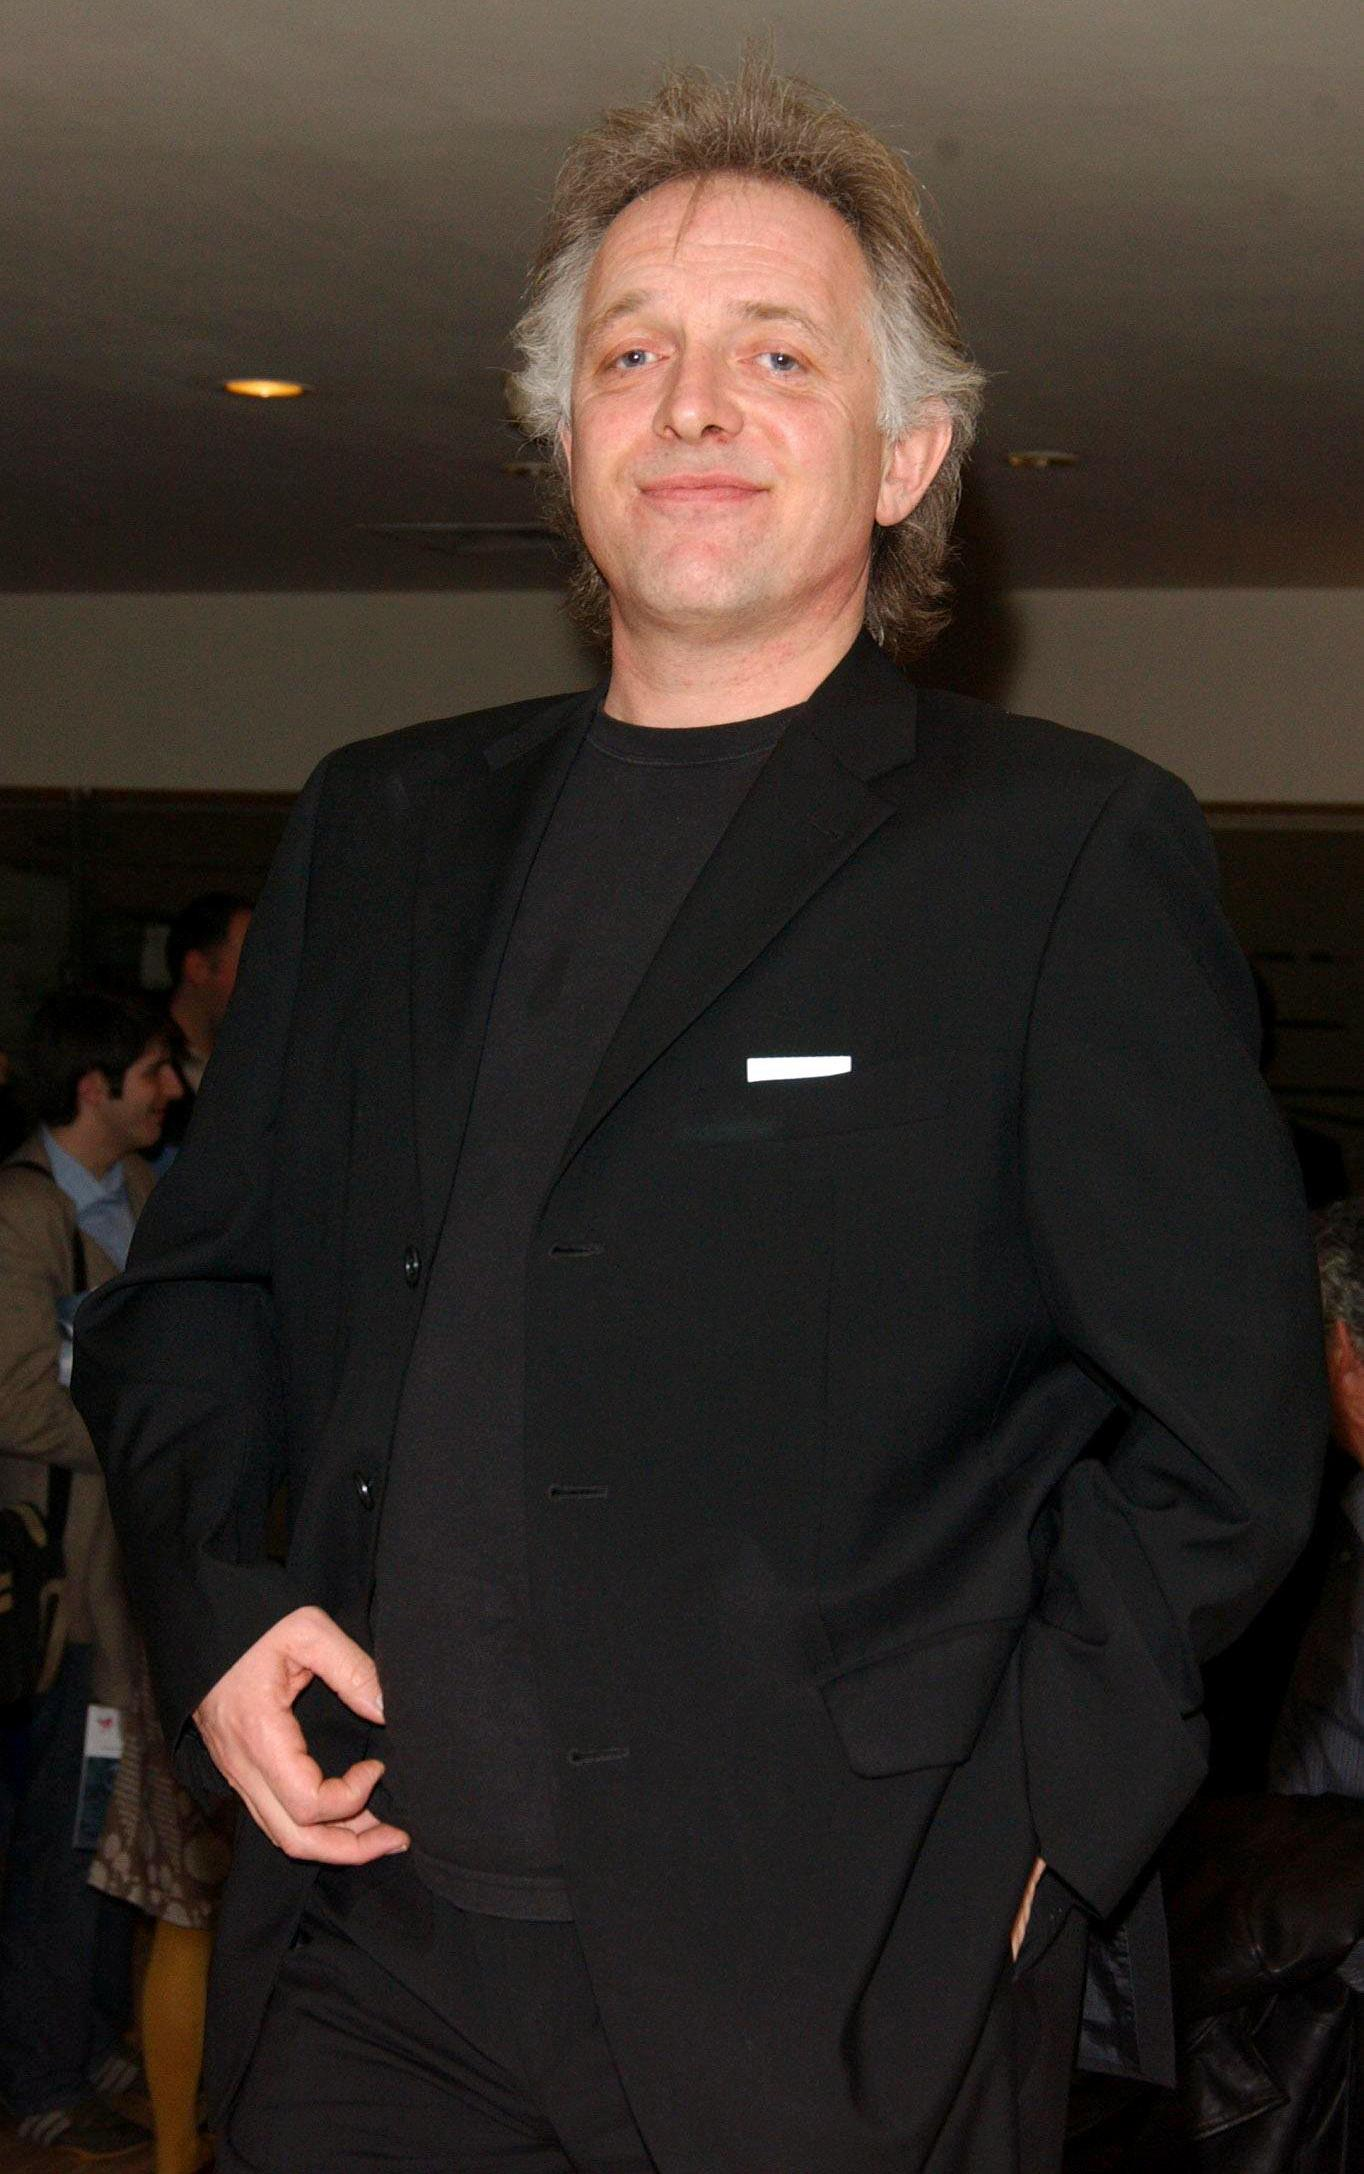 Host Rik Mayall arrives at the British Animation Awards (BAA's), at the Shaw Theatre, central London, Thursday 9 March 2006. Watch for PA Story. PRESS ASSOCIATION Photo. Photo credit should read: Anthony Harvey/PA